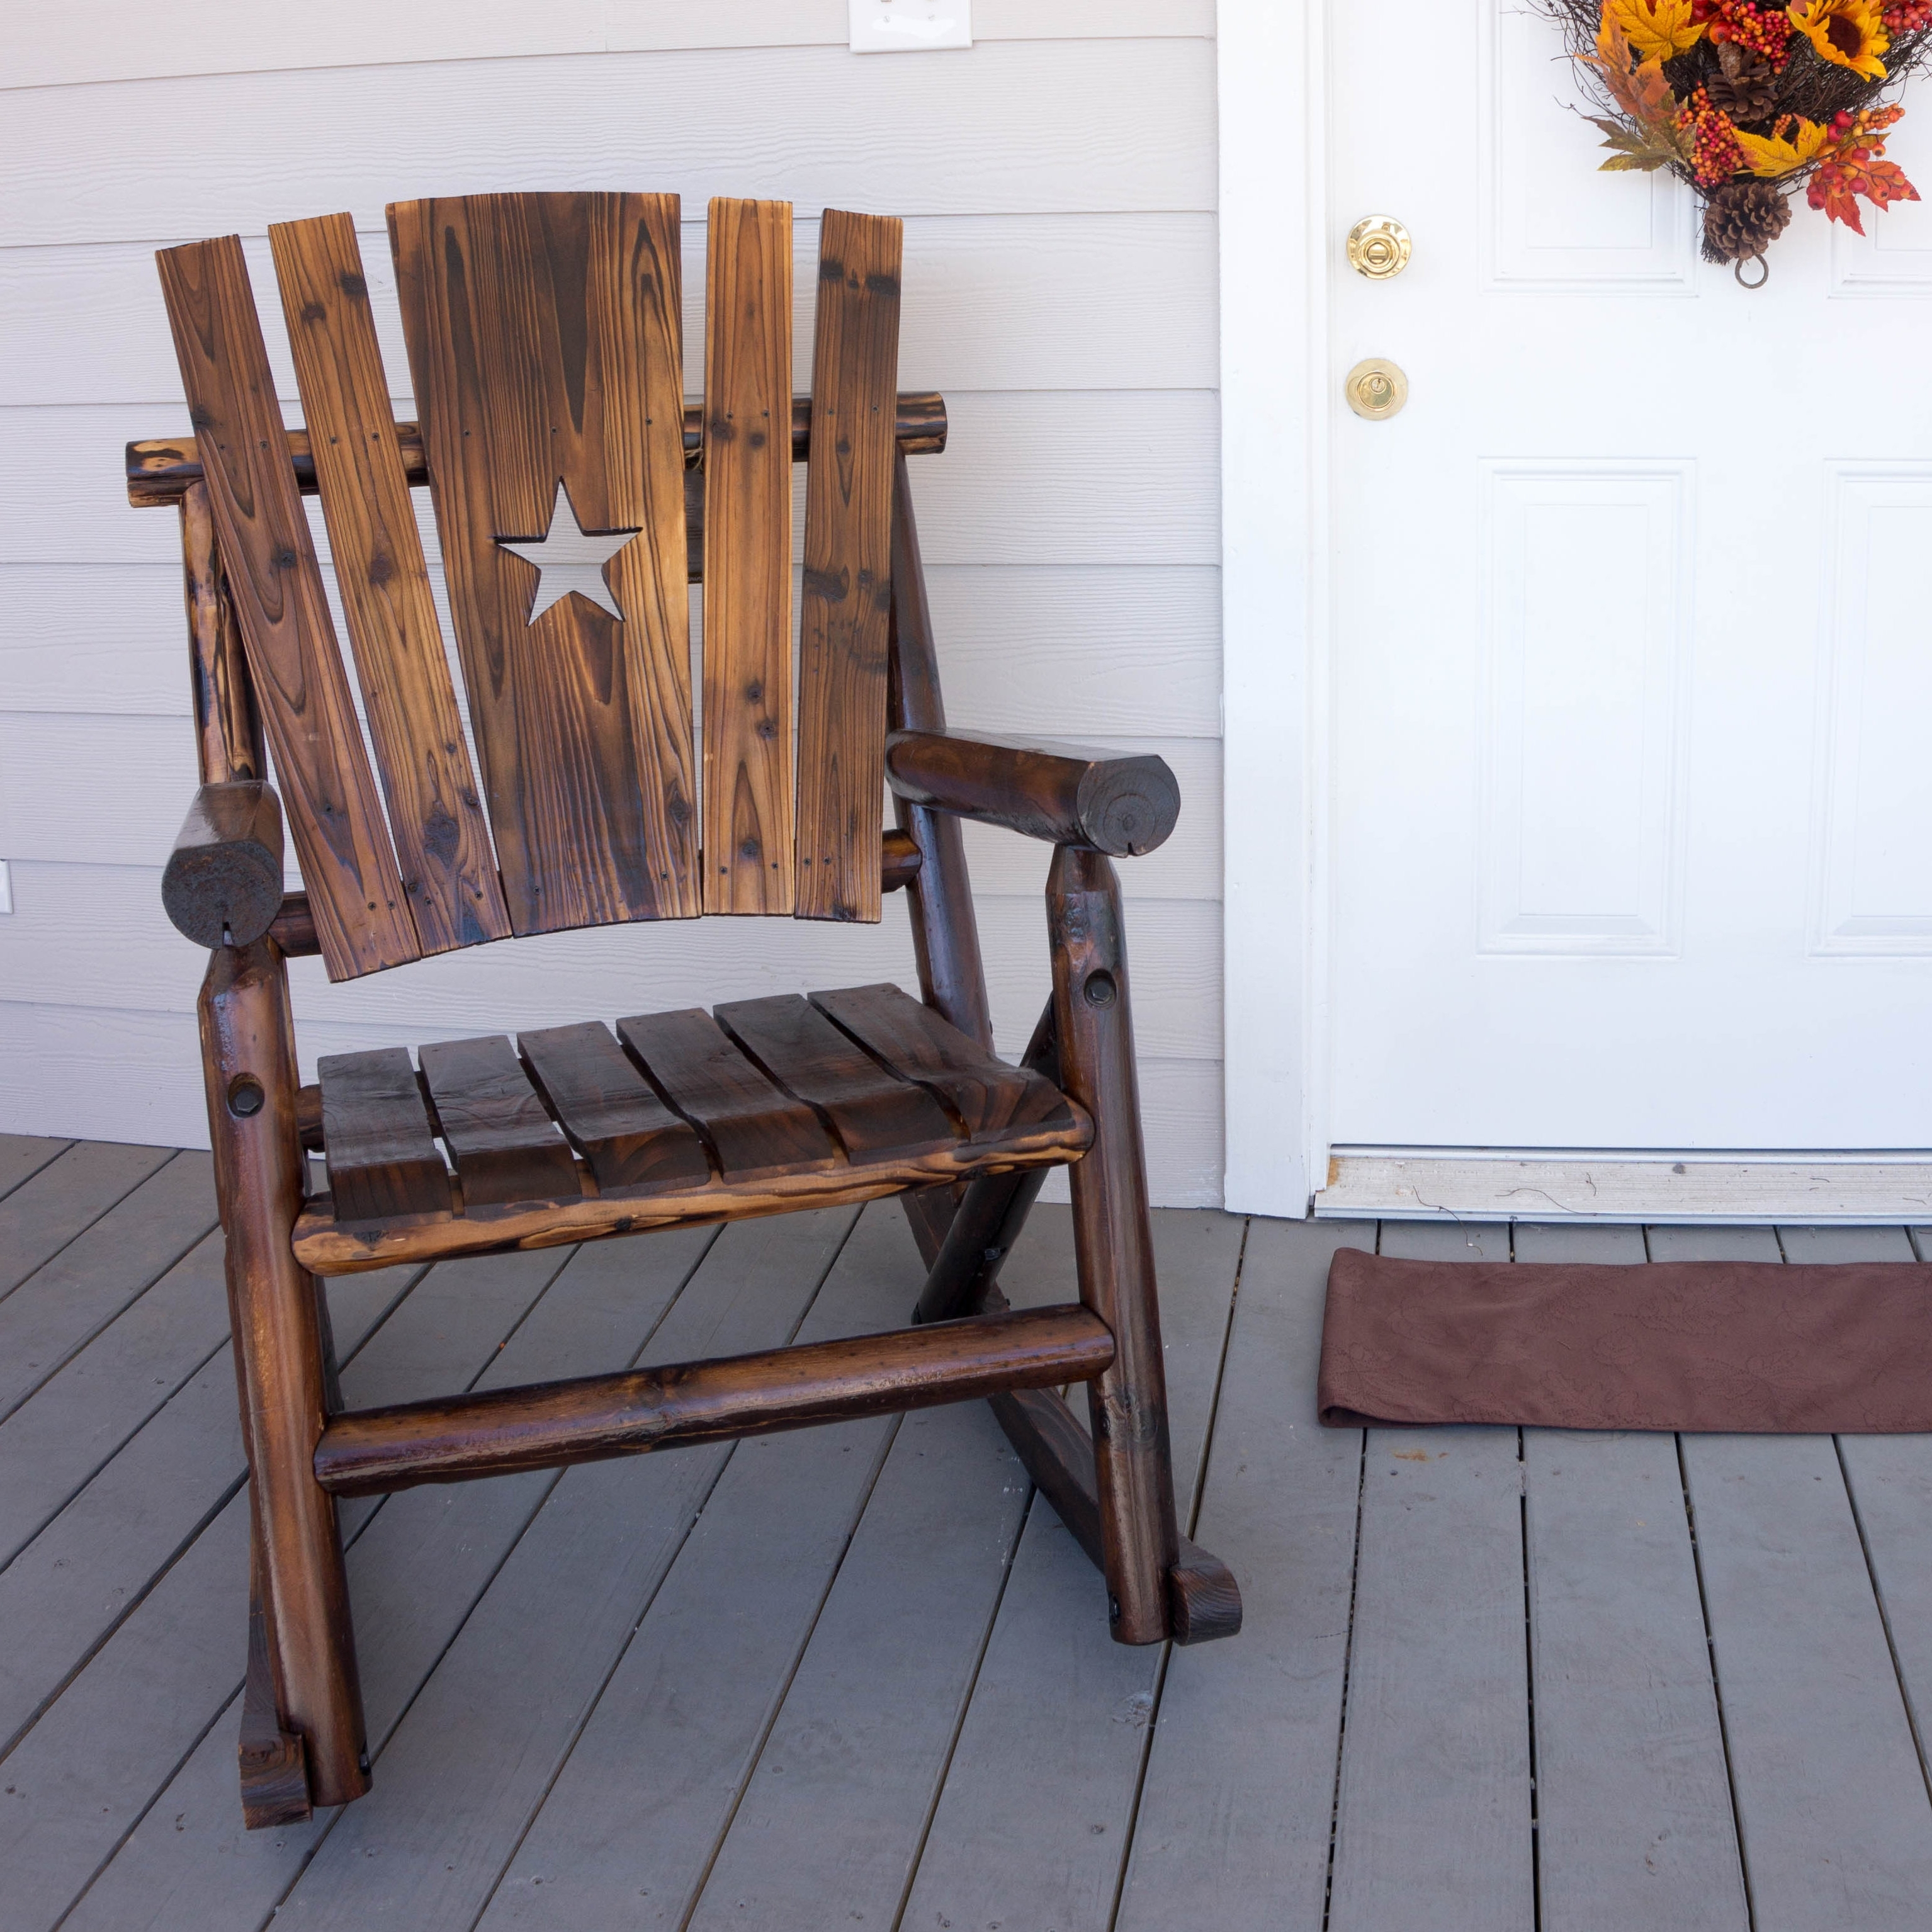 Wayfair Intended For Newest Char Log Patio Rocking Chairs With Star (View 20 of 20)